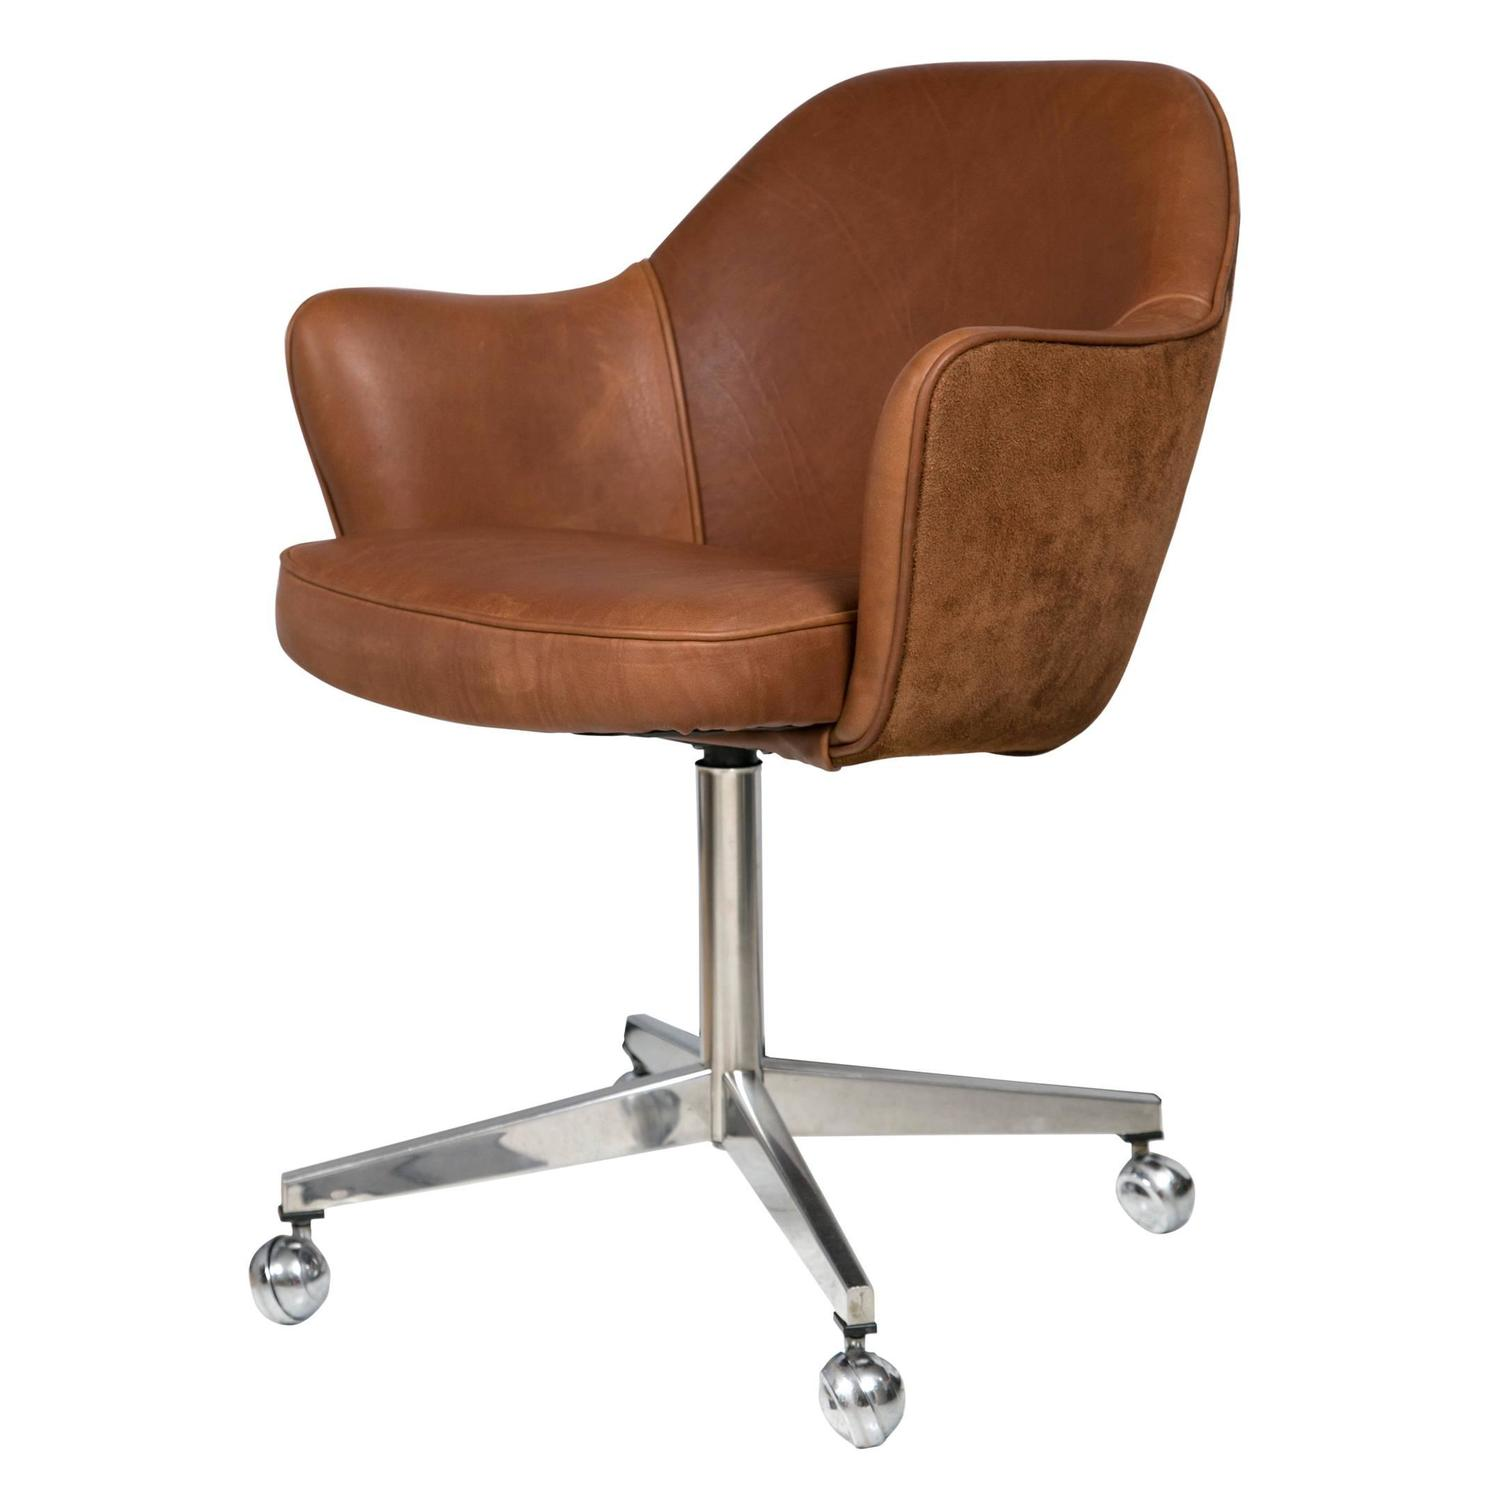 desk chair leather chairman mao knoll in saddle and suede for sale at